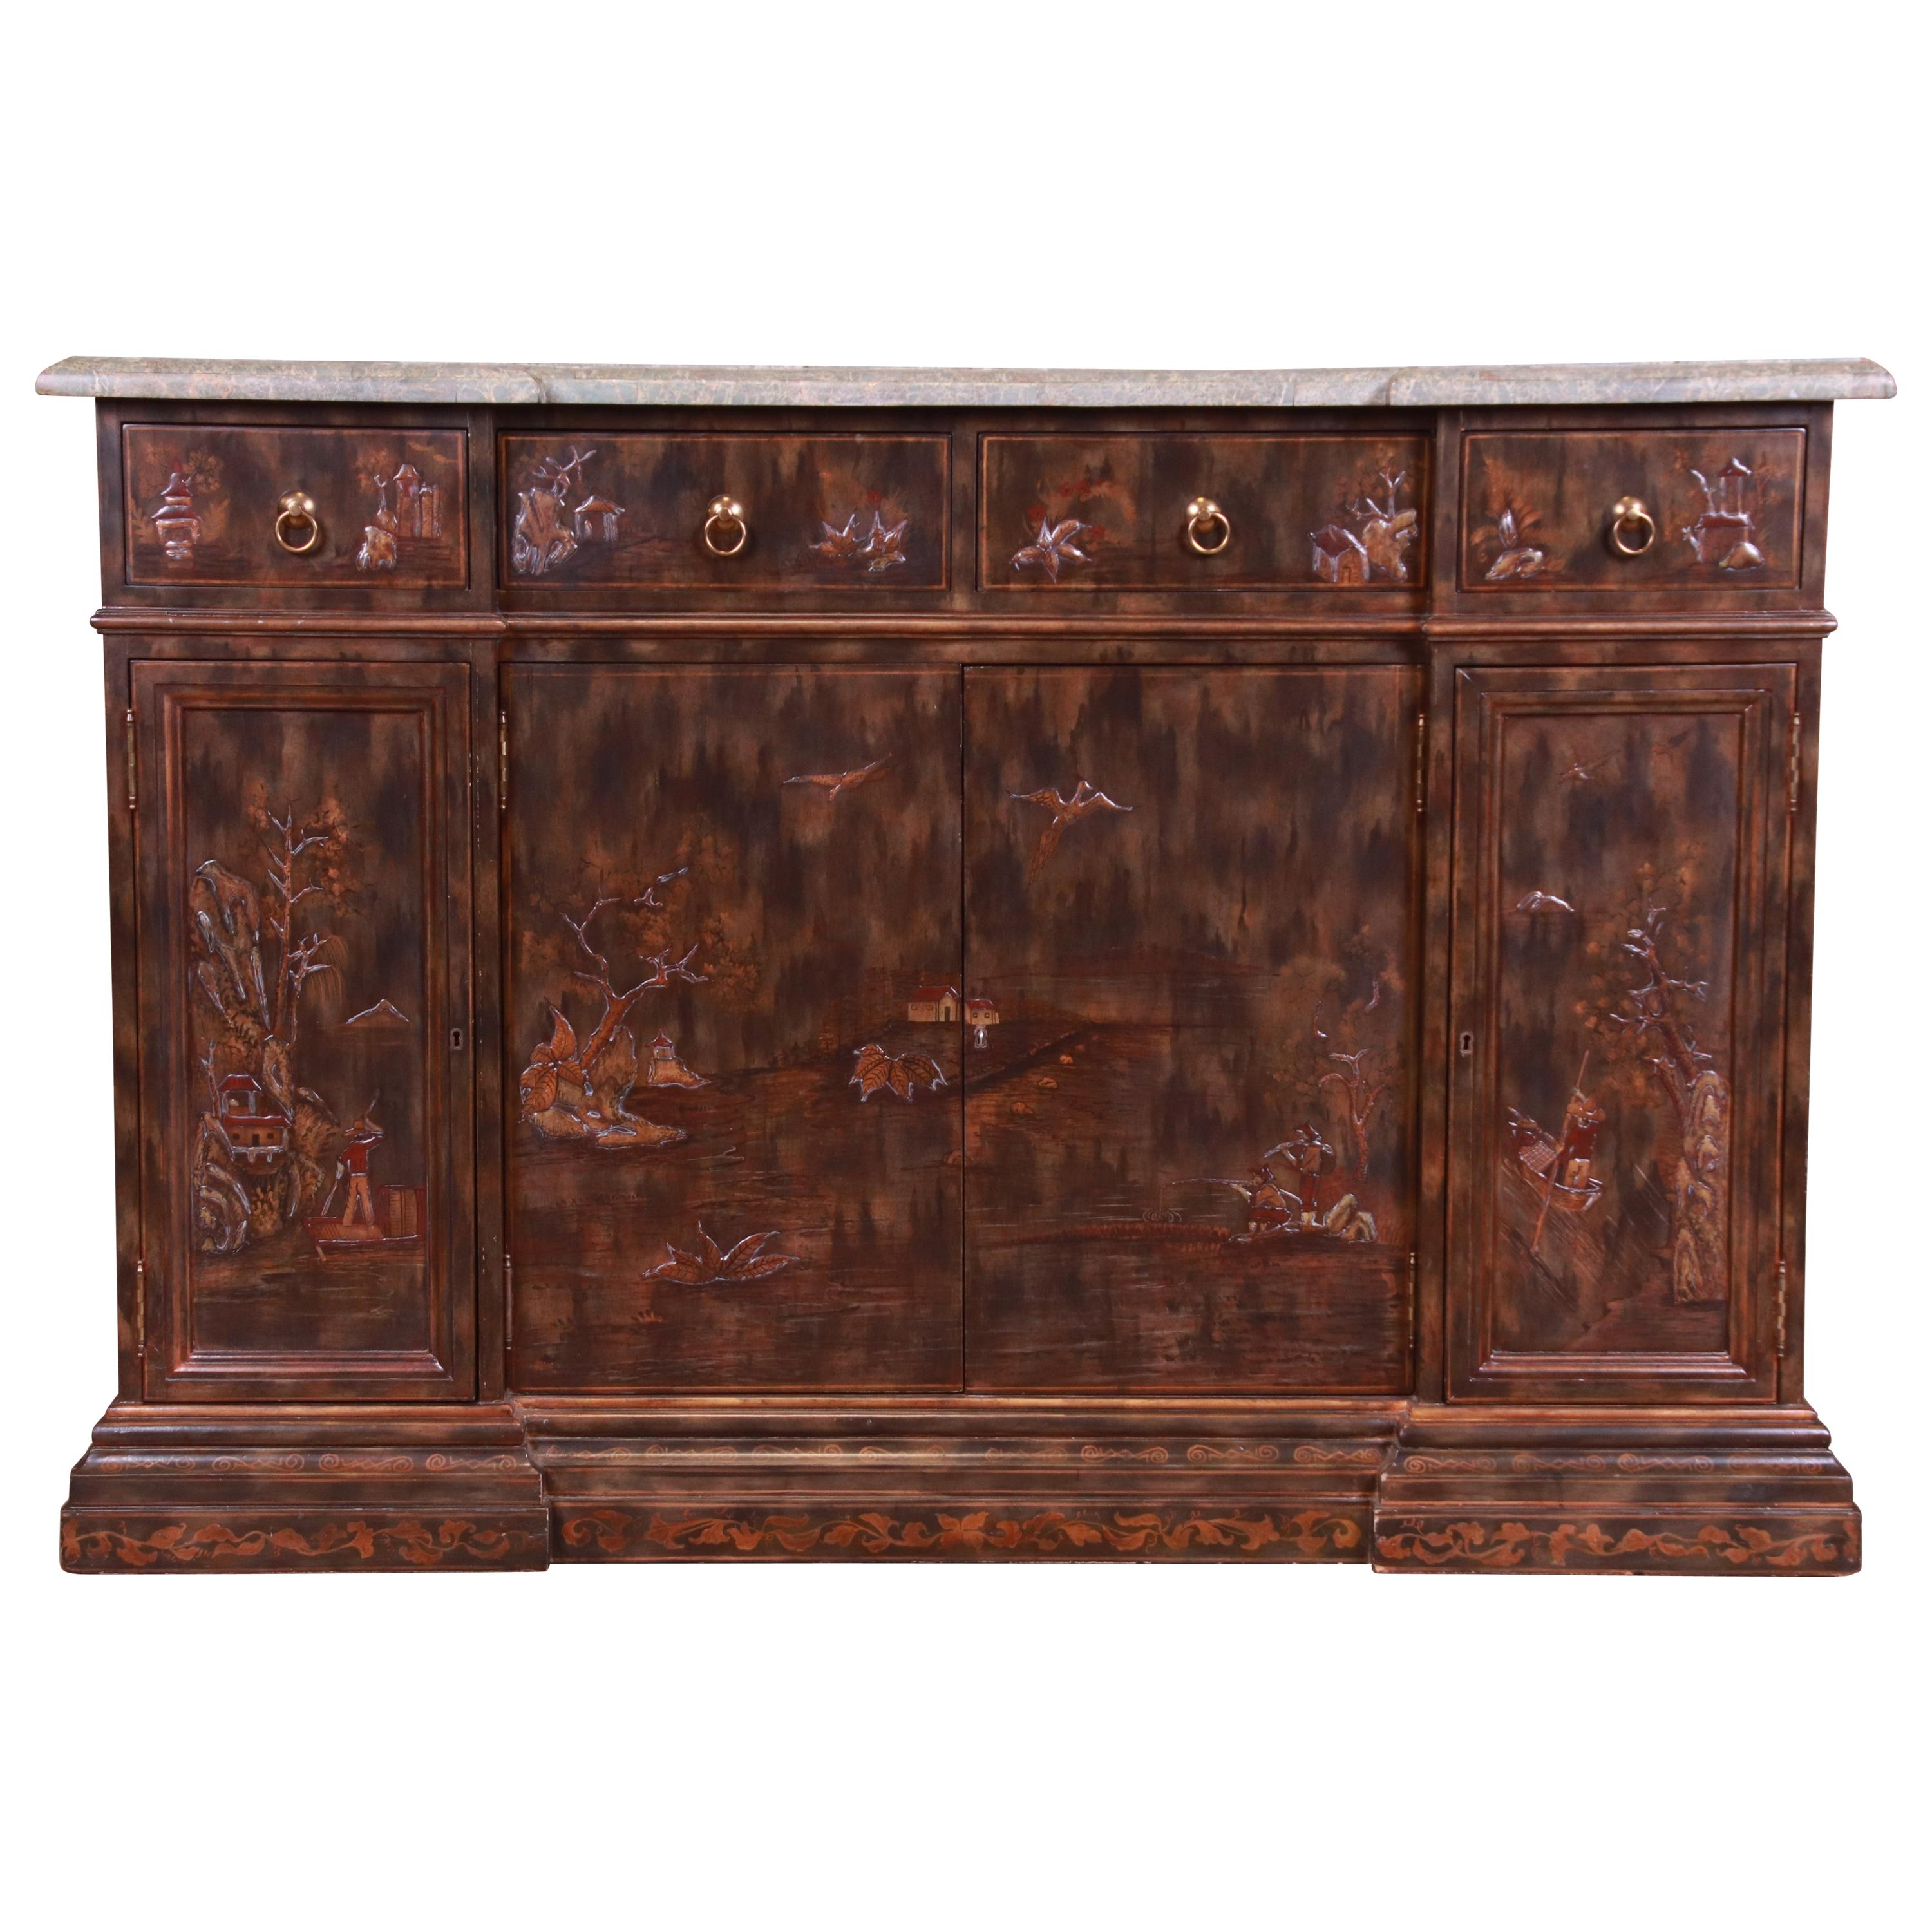 Maitland Smith Hollywood Regency Chinoiserie Marble-Top Sideboard or Bar Cabinet